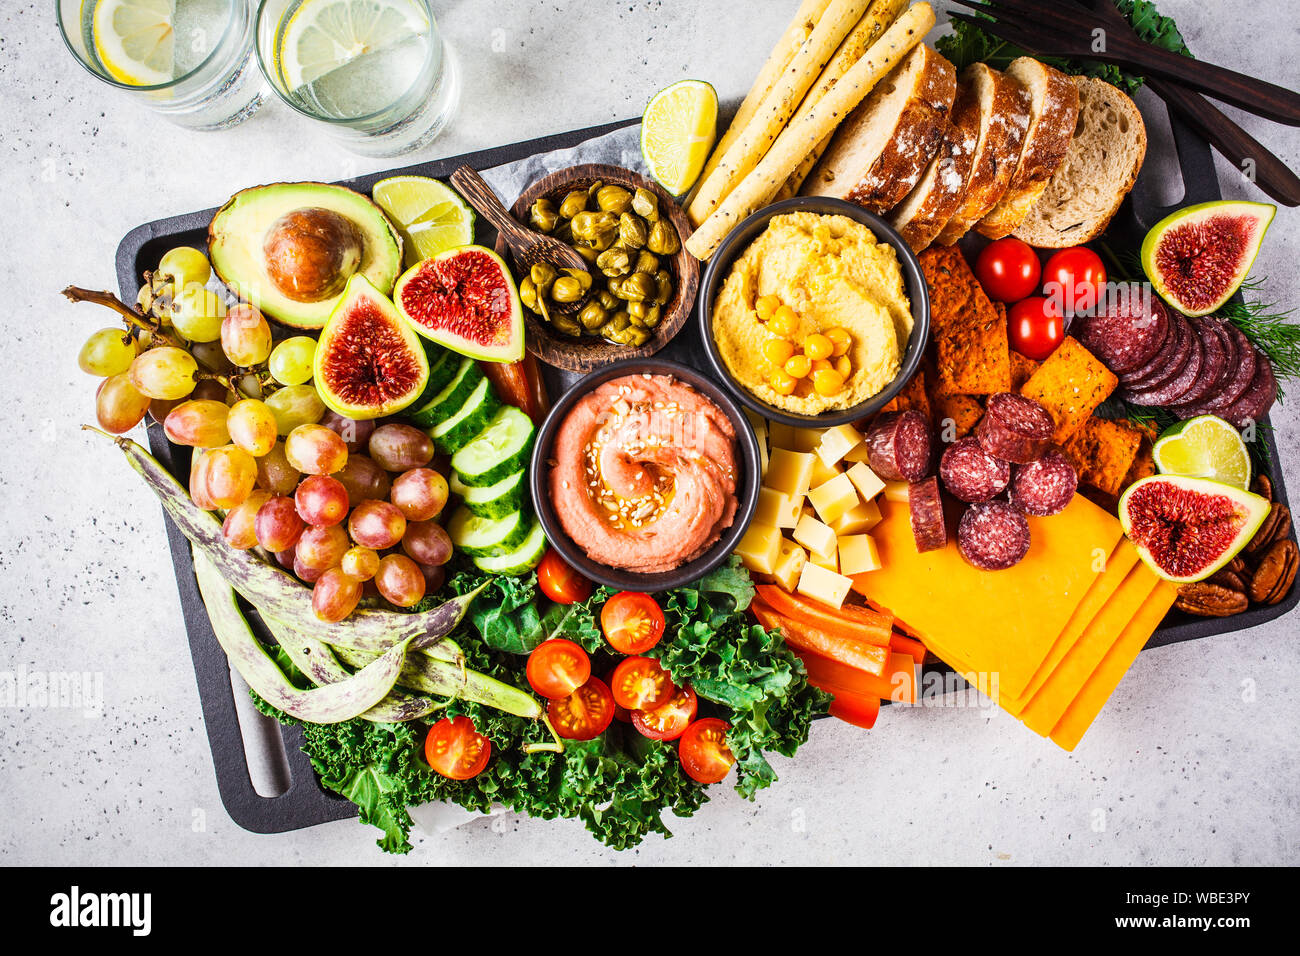 Meat And Cheese Appetizer Platter Sausage Cheese Hummus Vegetables Fruits And Bread On A Black Tray White Background Stock Photo Alamy